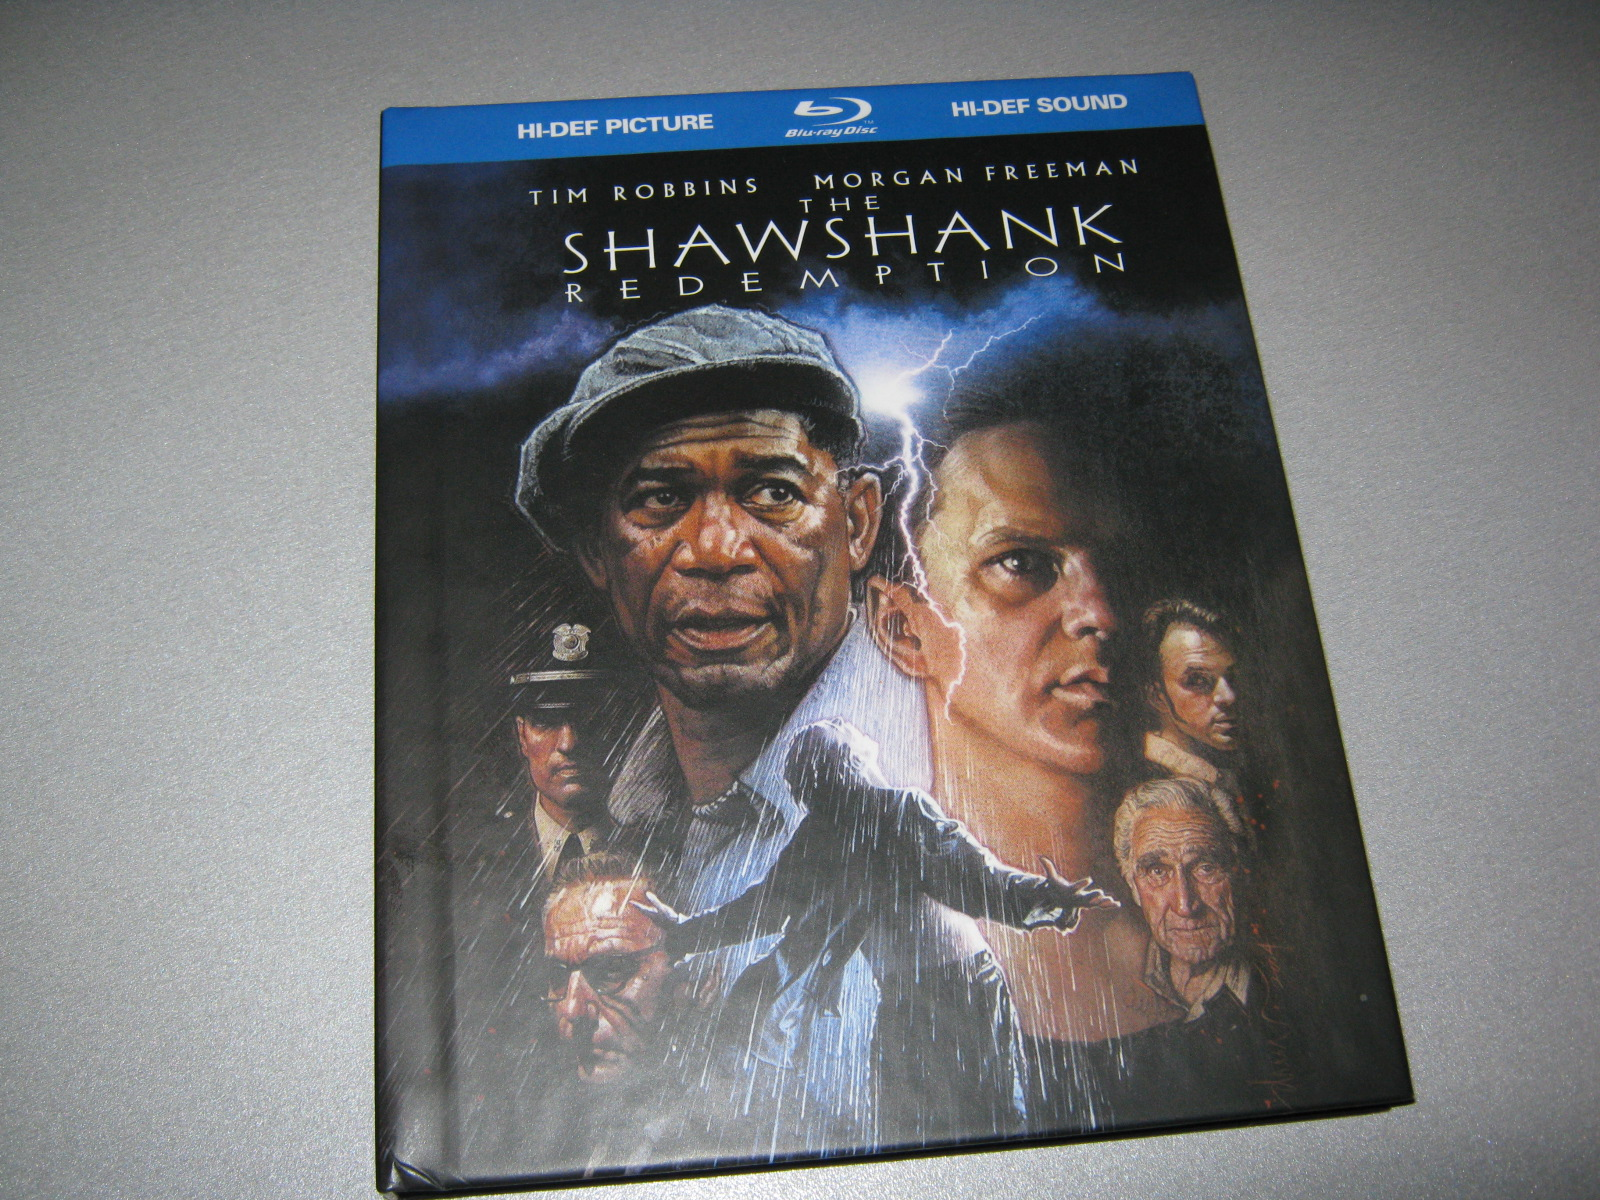 the shawshank redemption the importance of The shawshank redemption encourage the viewer to identify with the central characters values and attitudes one value expressed in the shawshank redemption is that of hope while andy firmly believes that hope is a good thing, because it keeps you holding on and it can't be taken from you.